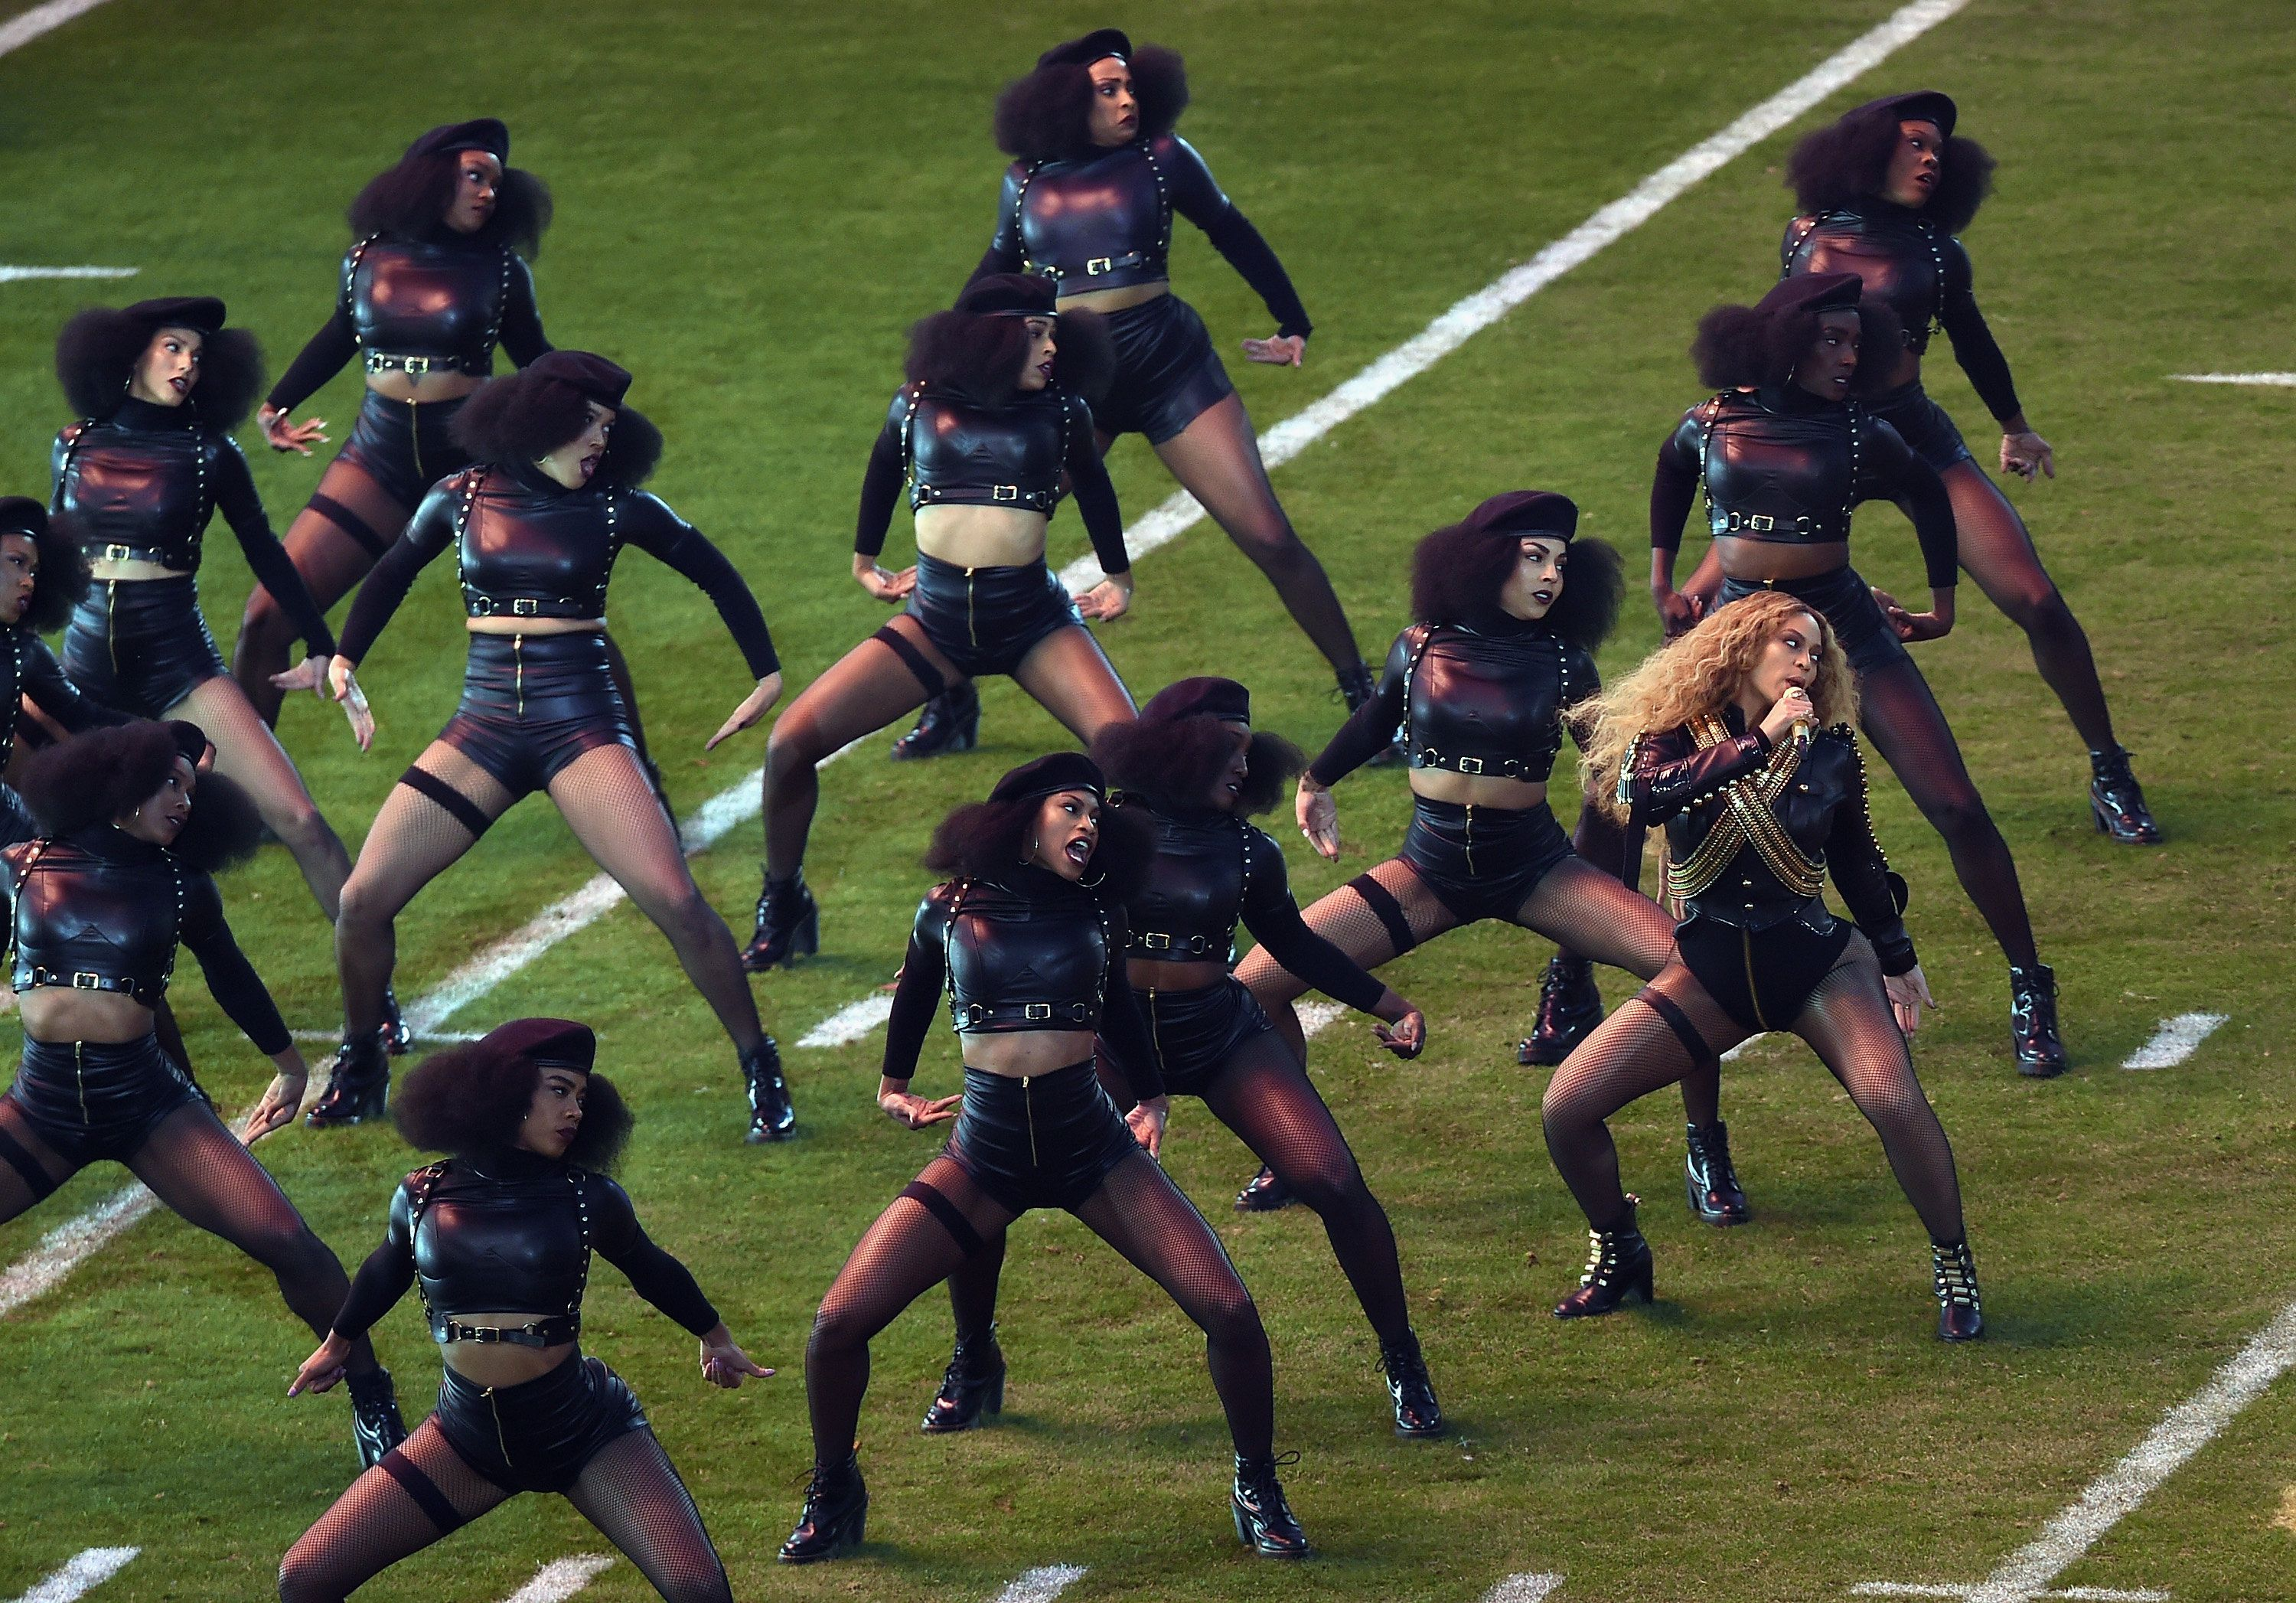 Beyoncé and her dancers at the Super Bowl earlier this